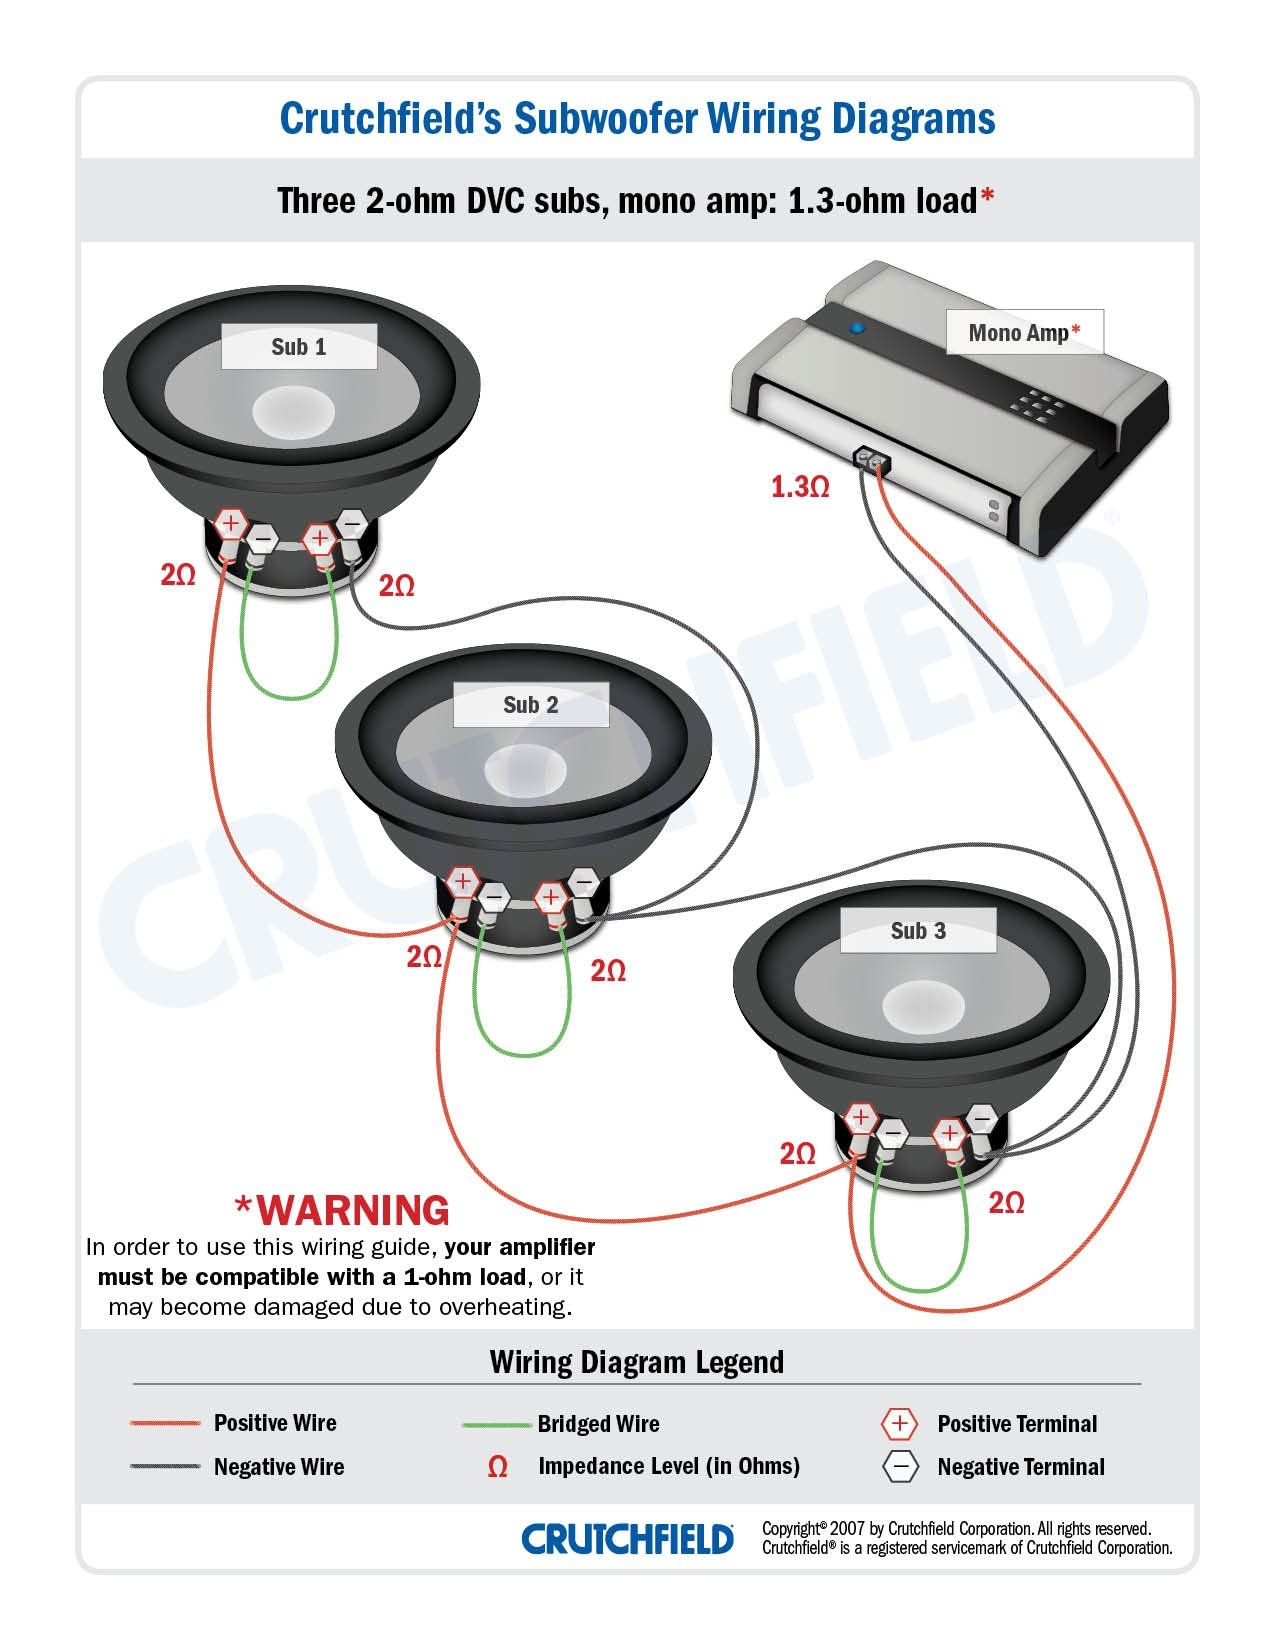 3 DVC 2 ohm mono low imp how to match subwoofers and amplifiers boston acoustics subsat 6 wiring diagram at alyssarenee.co